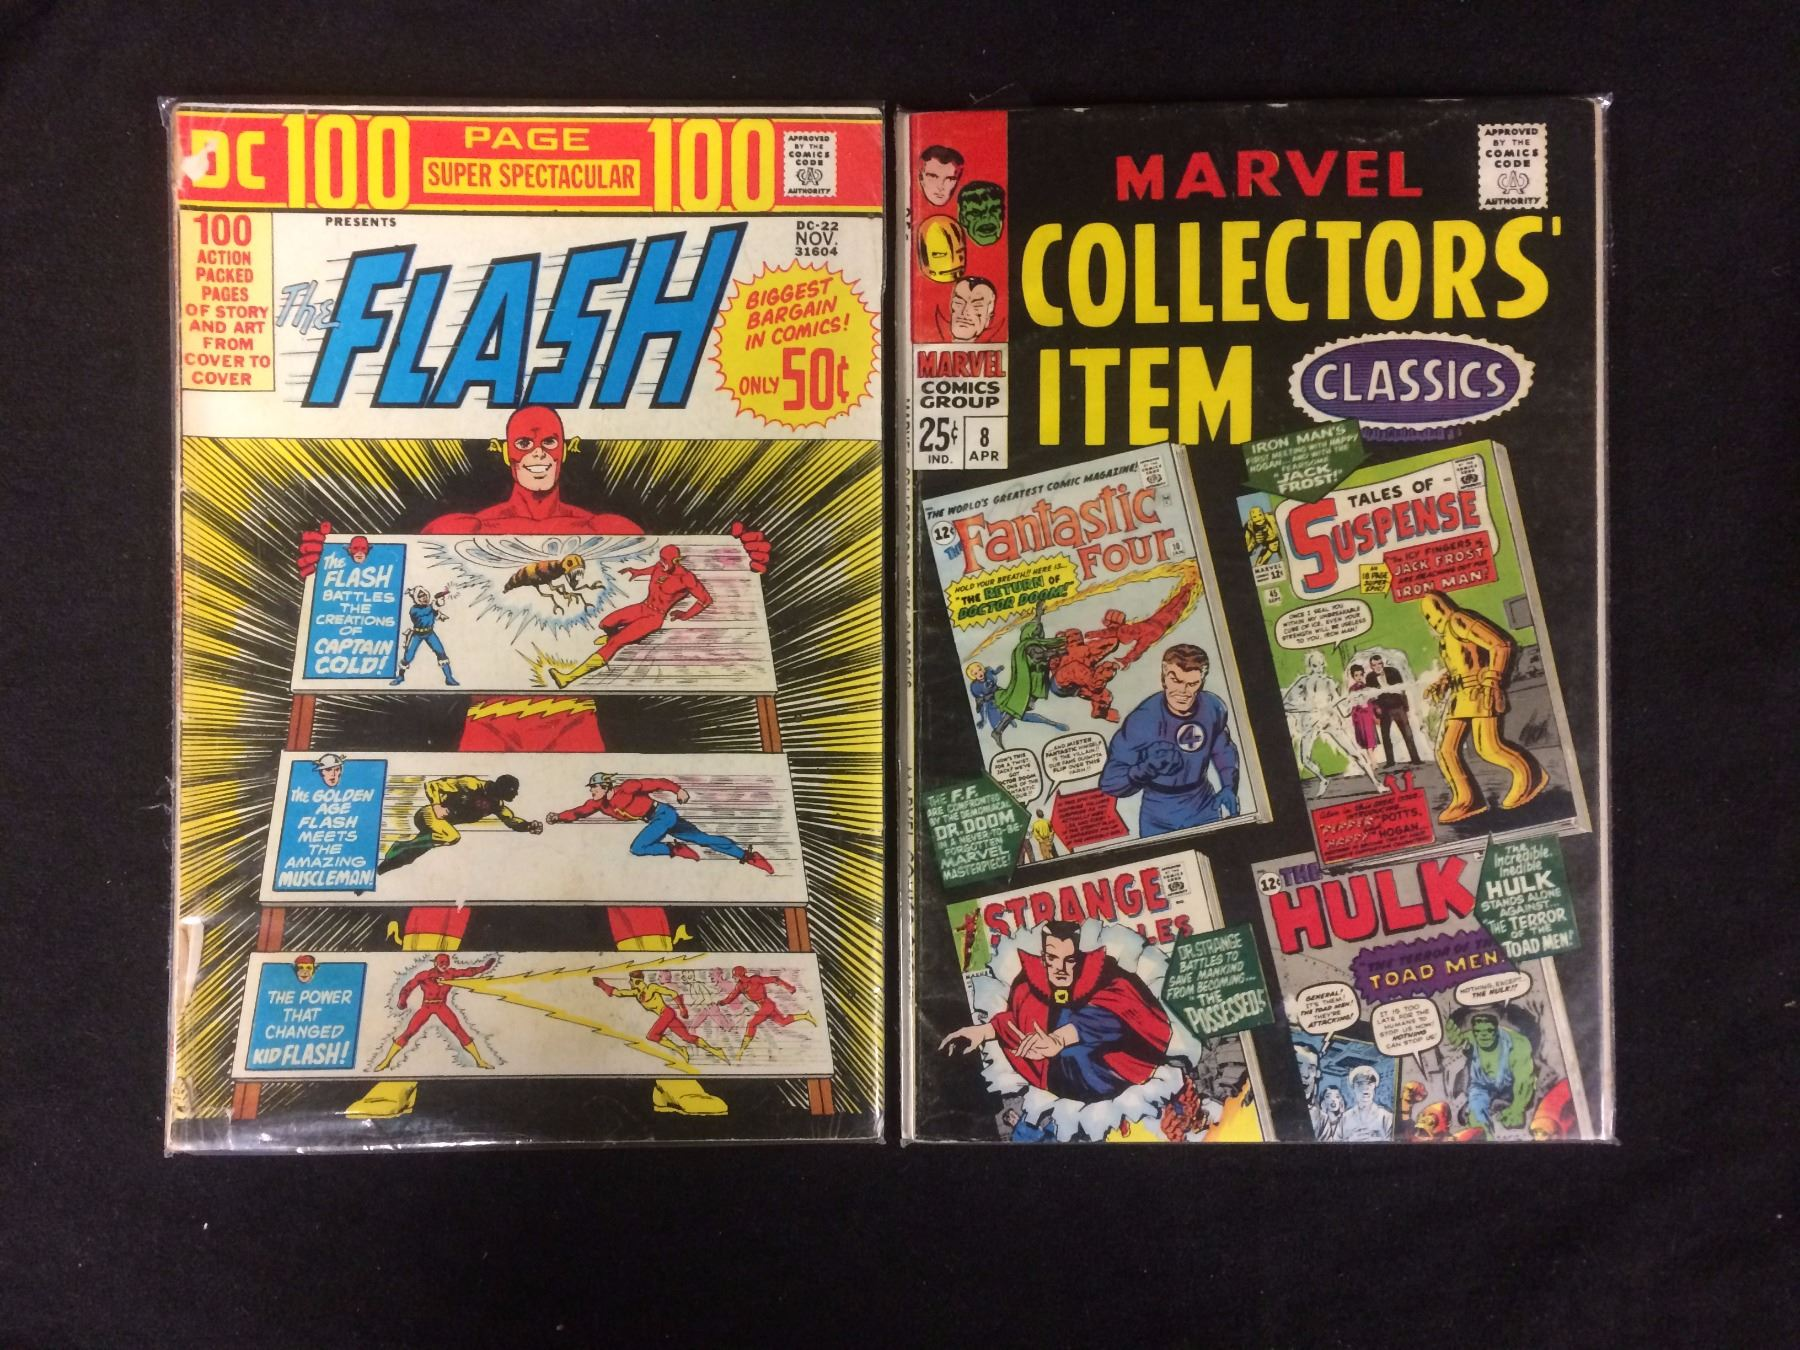 FLASH AND COLECTORS ITEM CLASSIC COMIC BOOK LOT